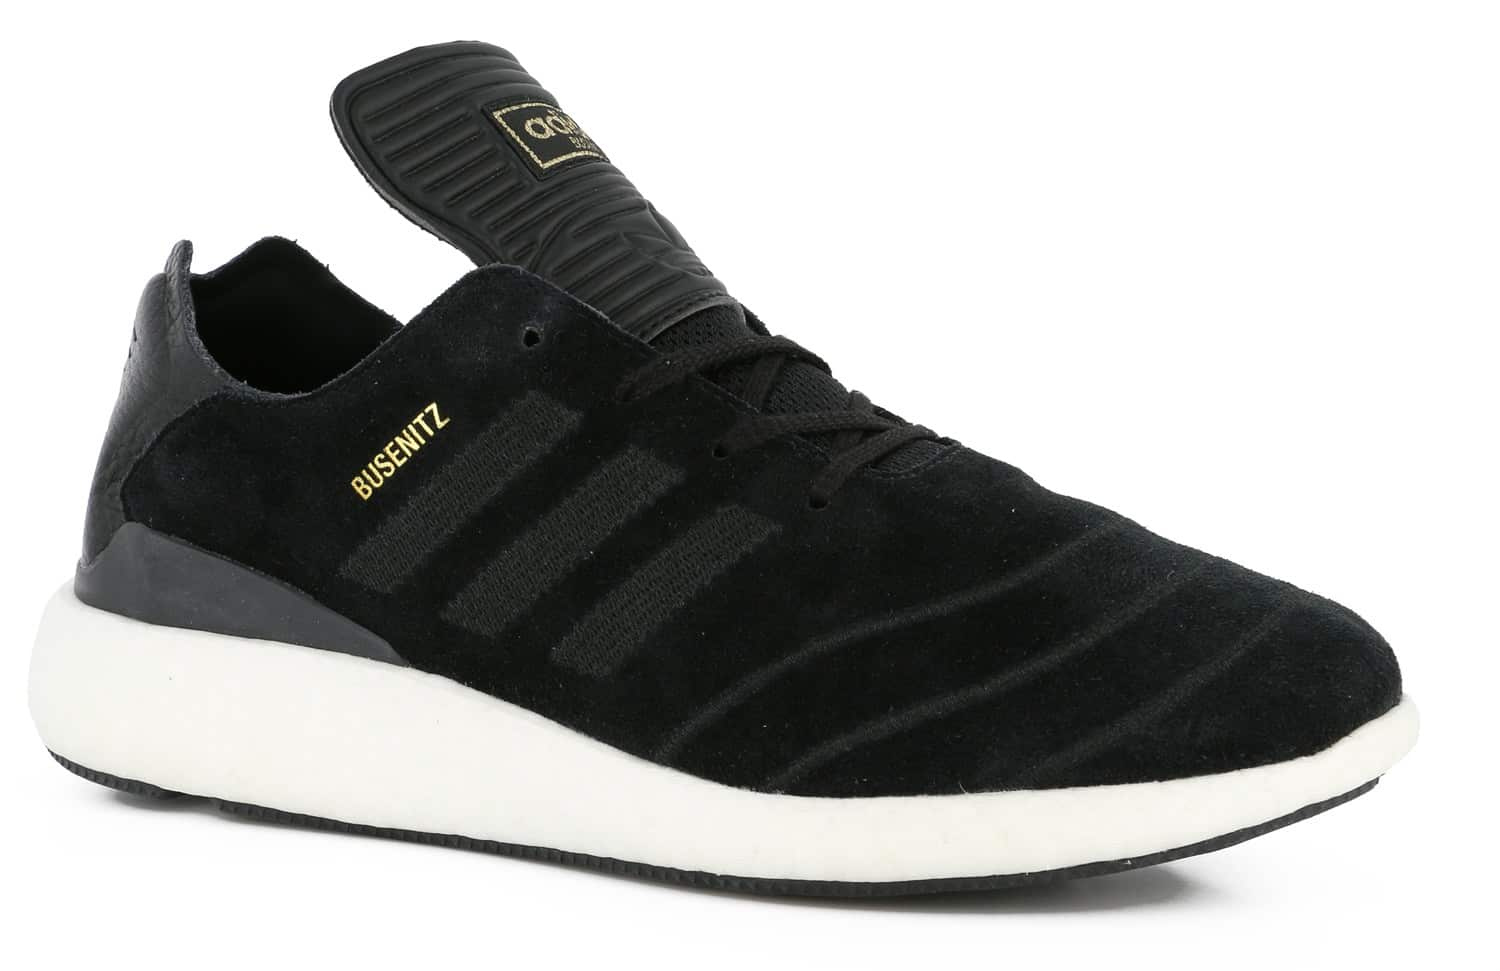 promo code 18140 ec79a adidas busenitz pure boost prime all black shoes